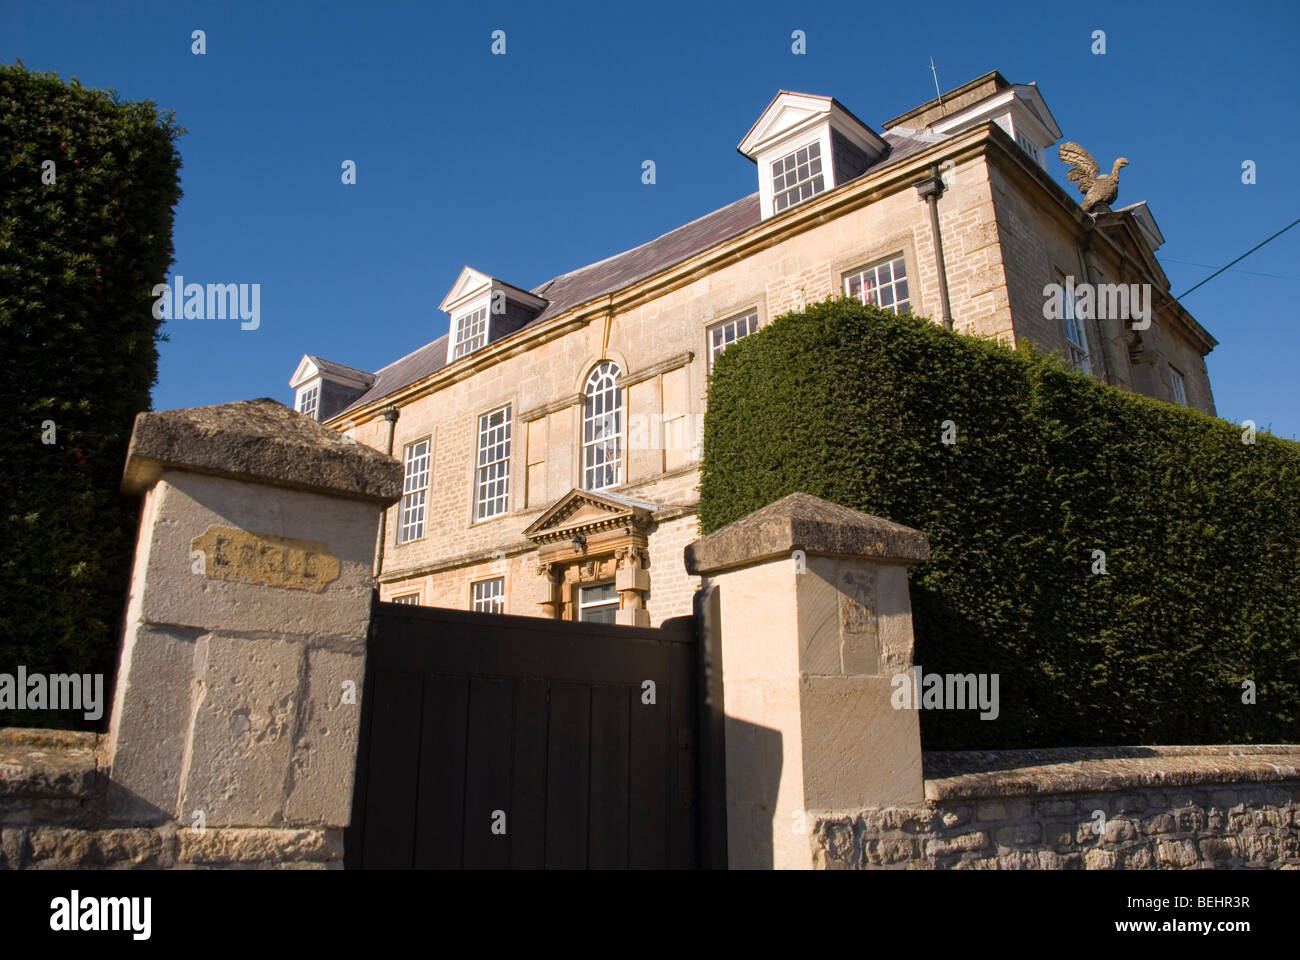 Eagle House Batheaston BaNES England UK Used as a meeting place and refuge for suffragettes in early 20th century. - Stock Image